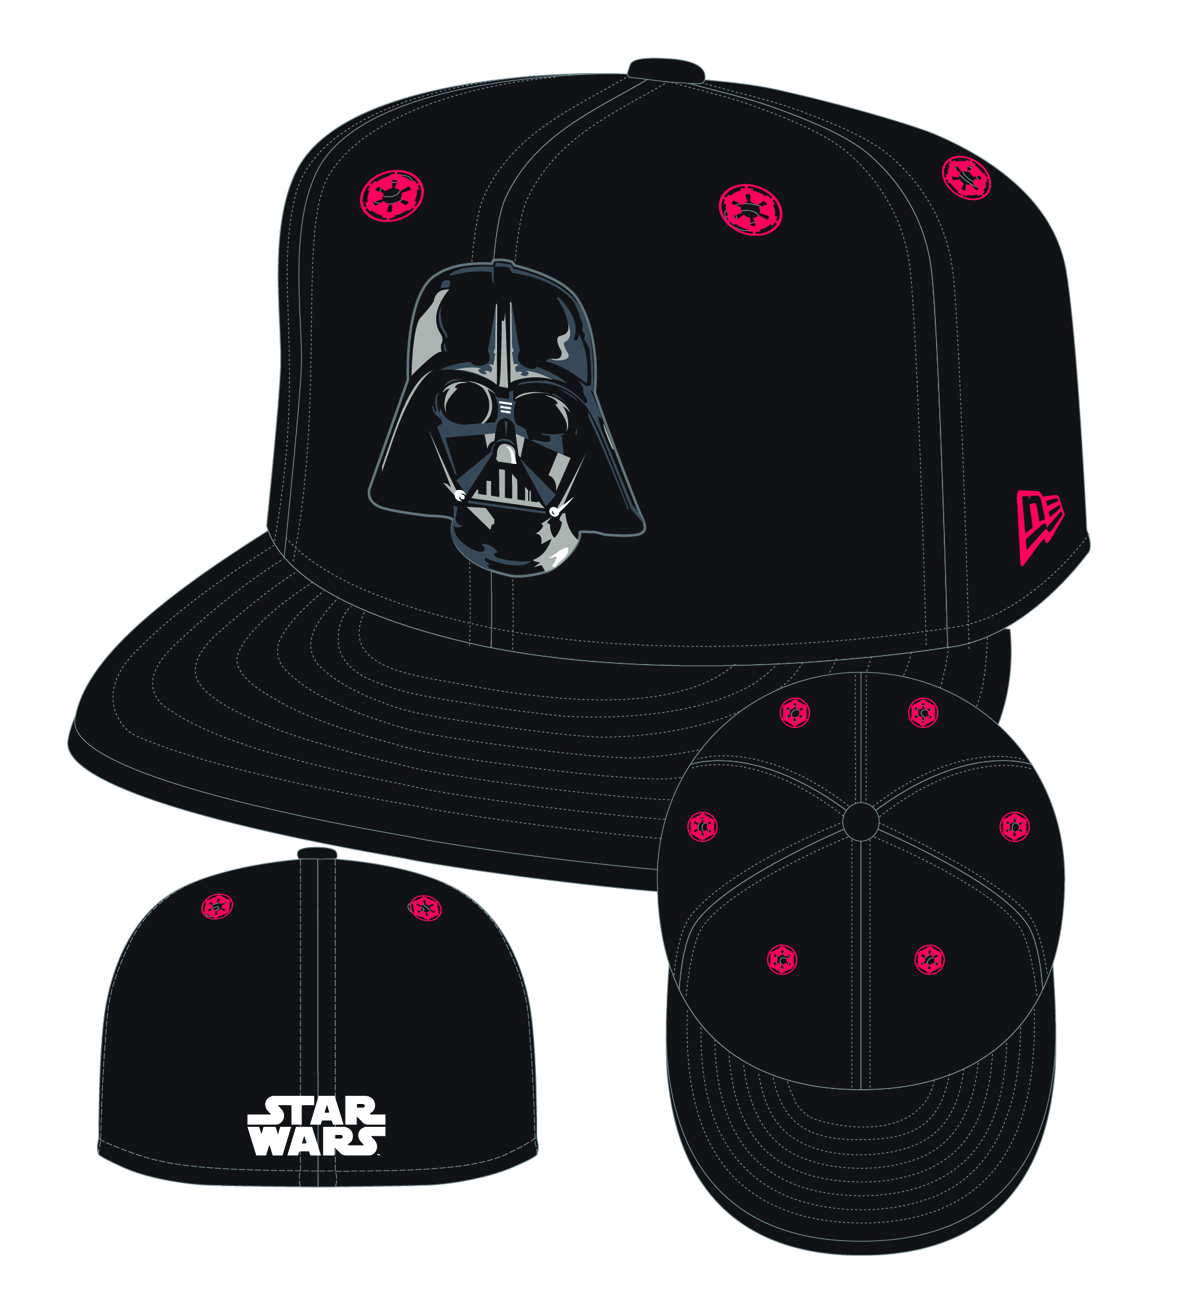 STAR WARS DARTH VADER 5950 STARGAZER FITTED CAP SZ 7 1/8